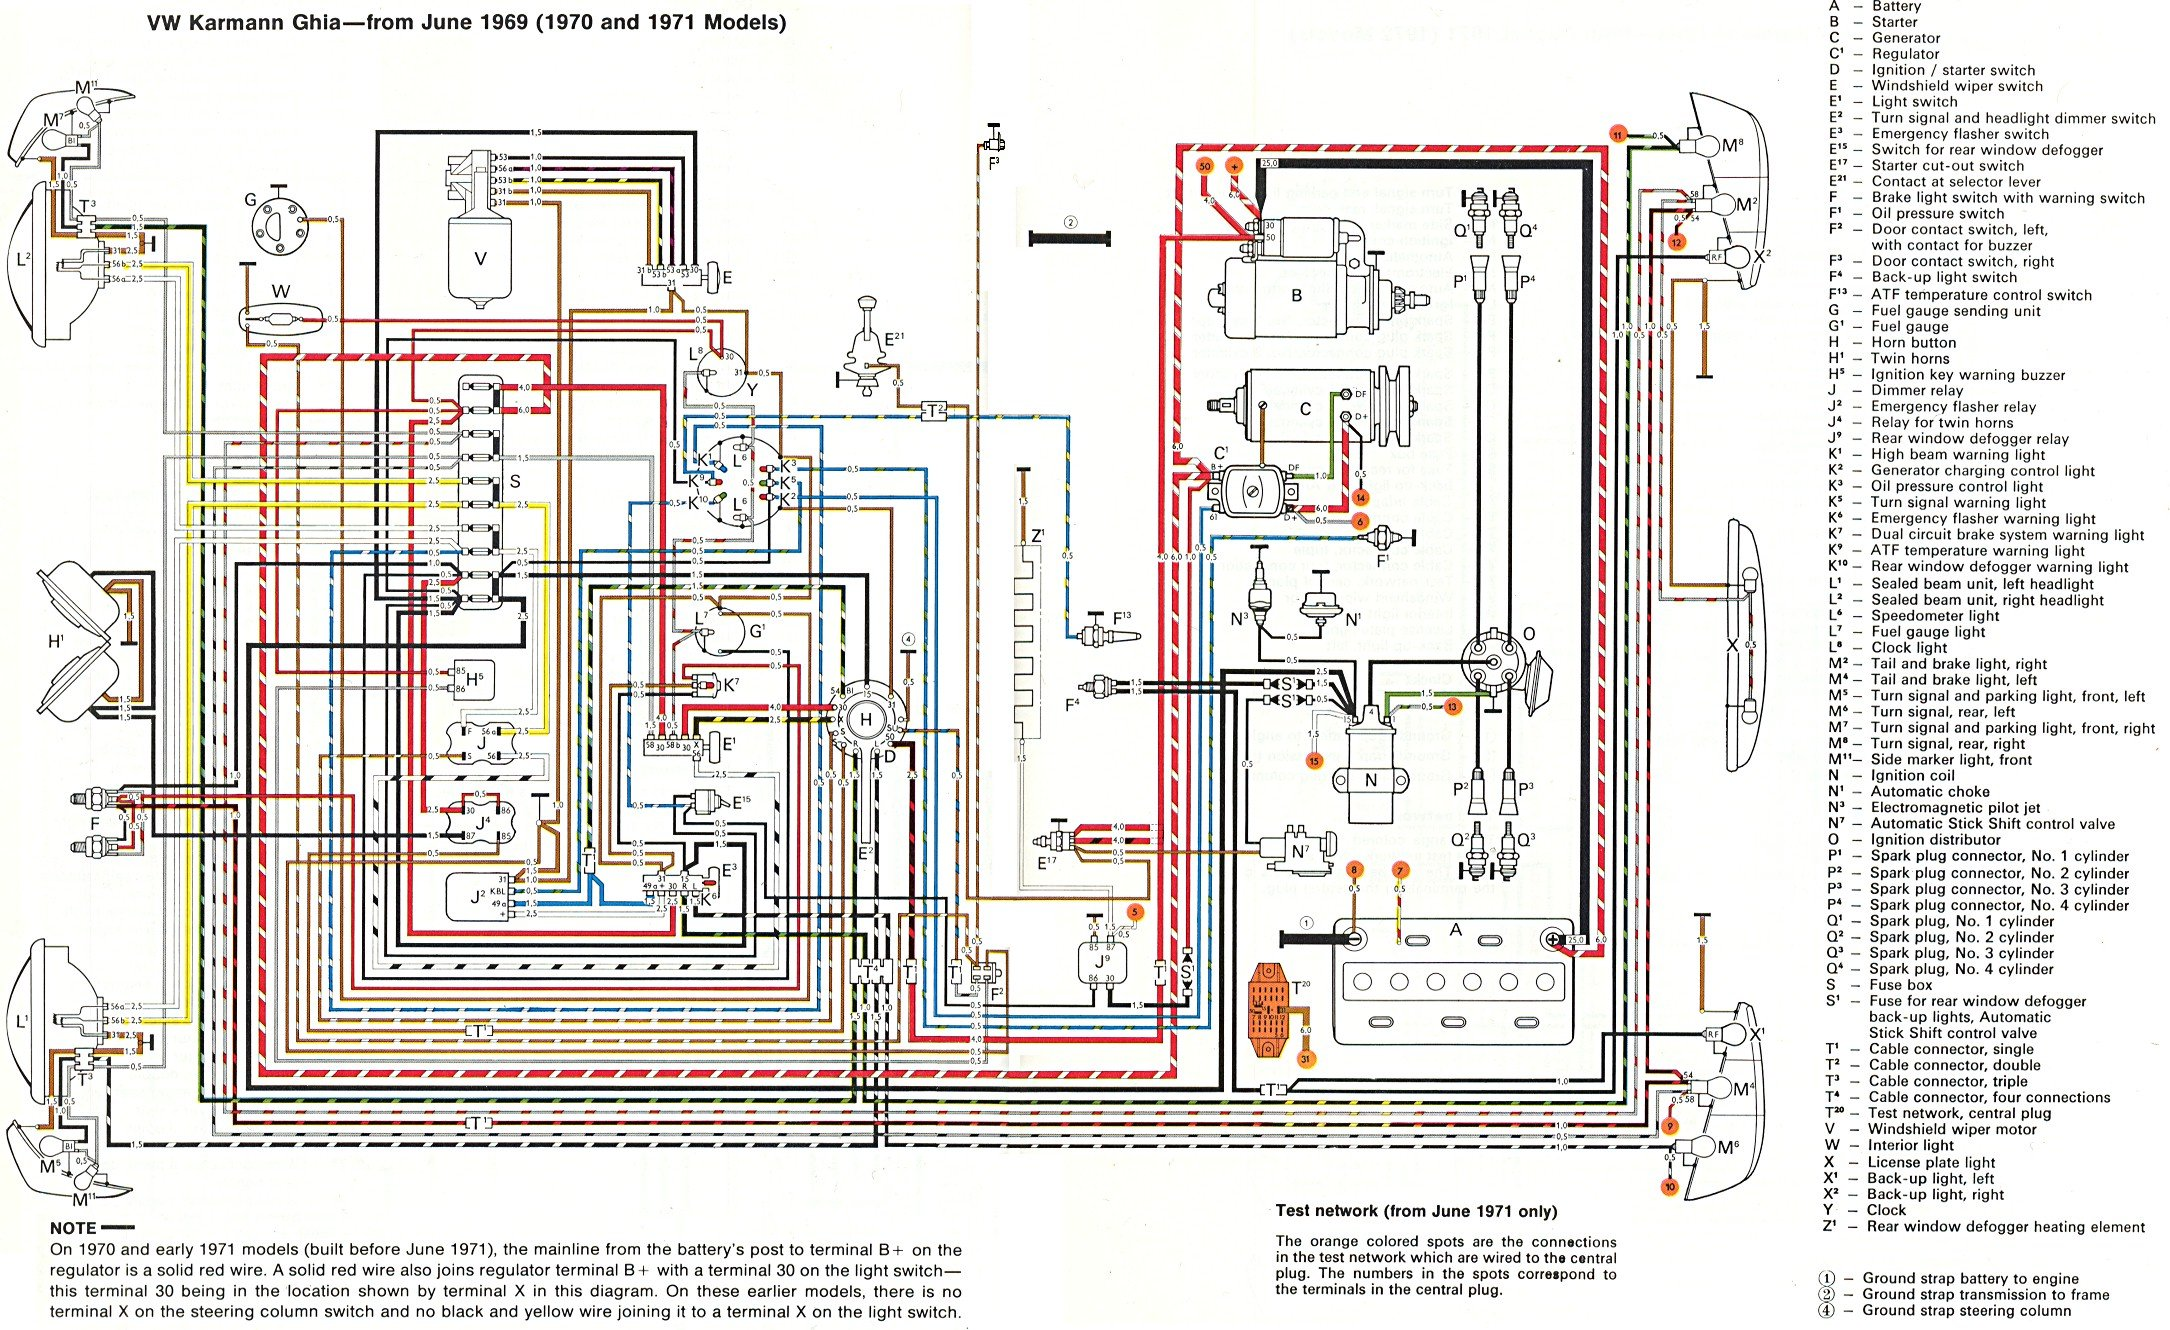 Thesamba karmann ghia wiring diagrams sciox Gallery